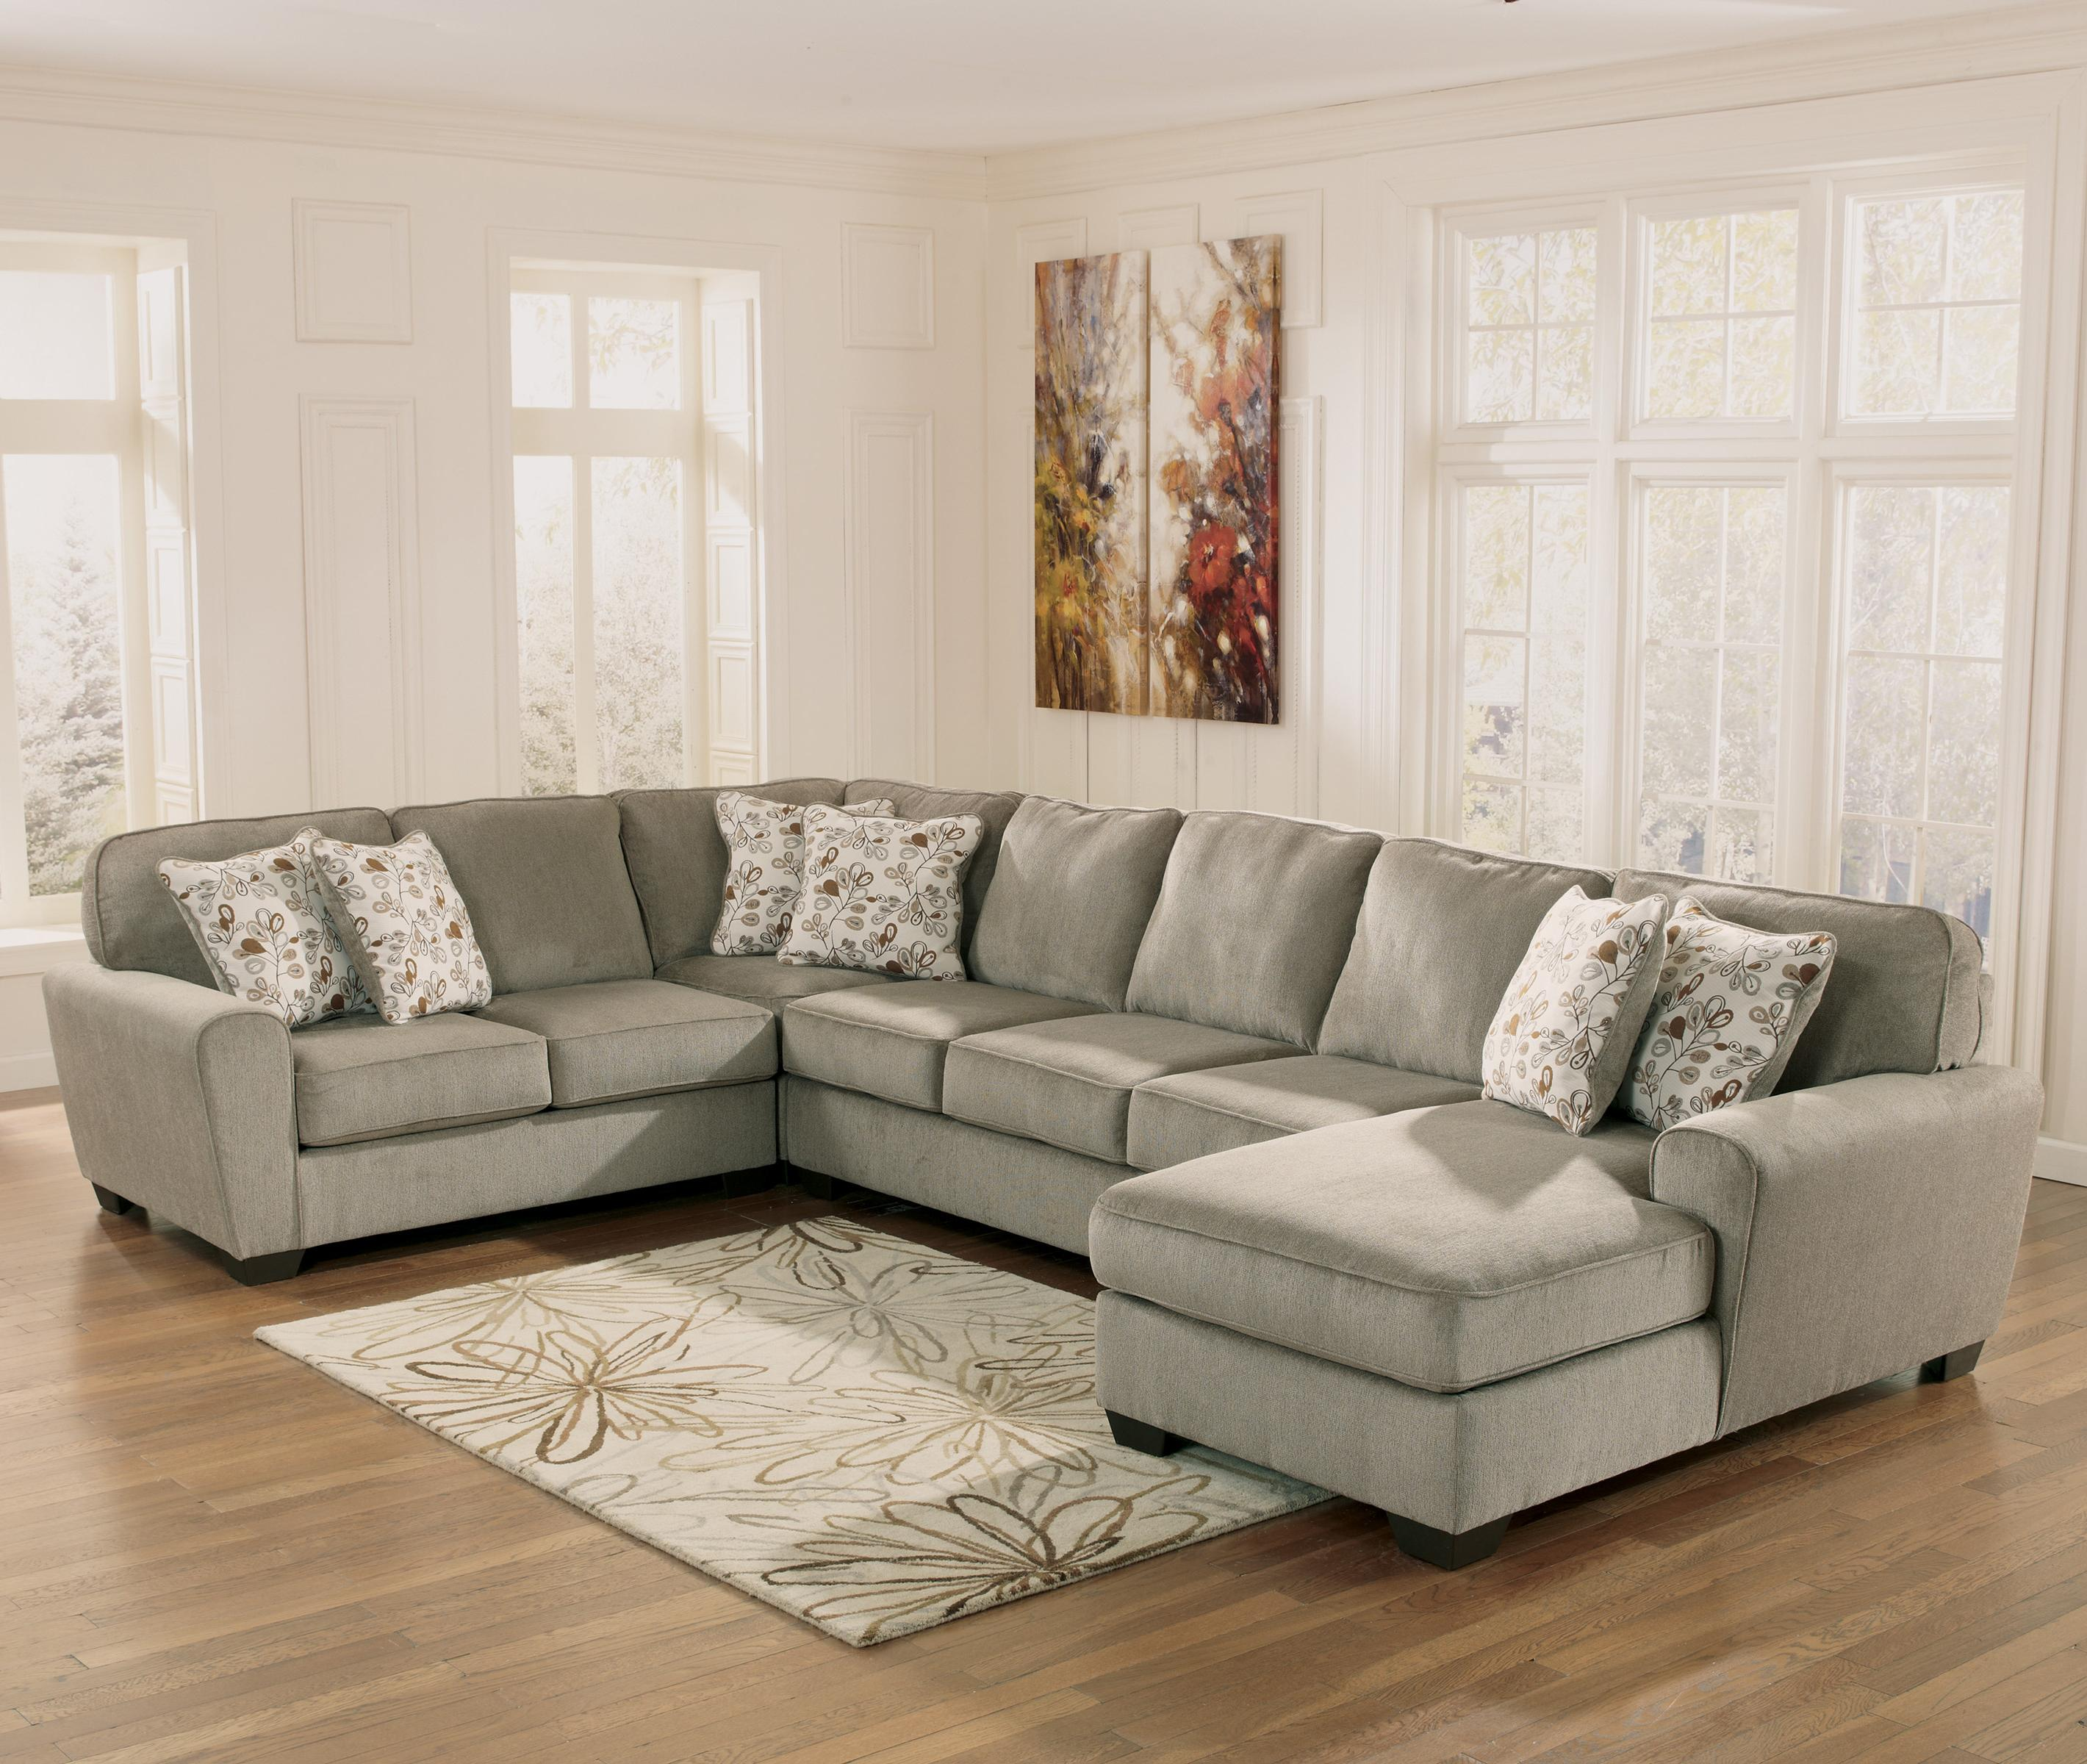 Ashley Furniture Patola Park - Patina 4-Piece Sectional with Right Chaise - Item Number : 4 piece sectional with chaise - Sectionals, Sofas & Couches